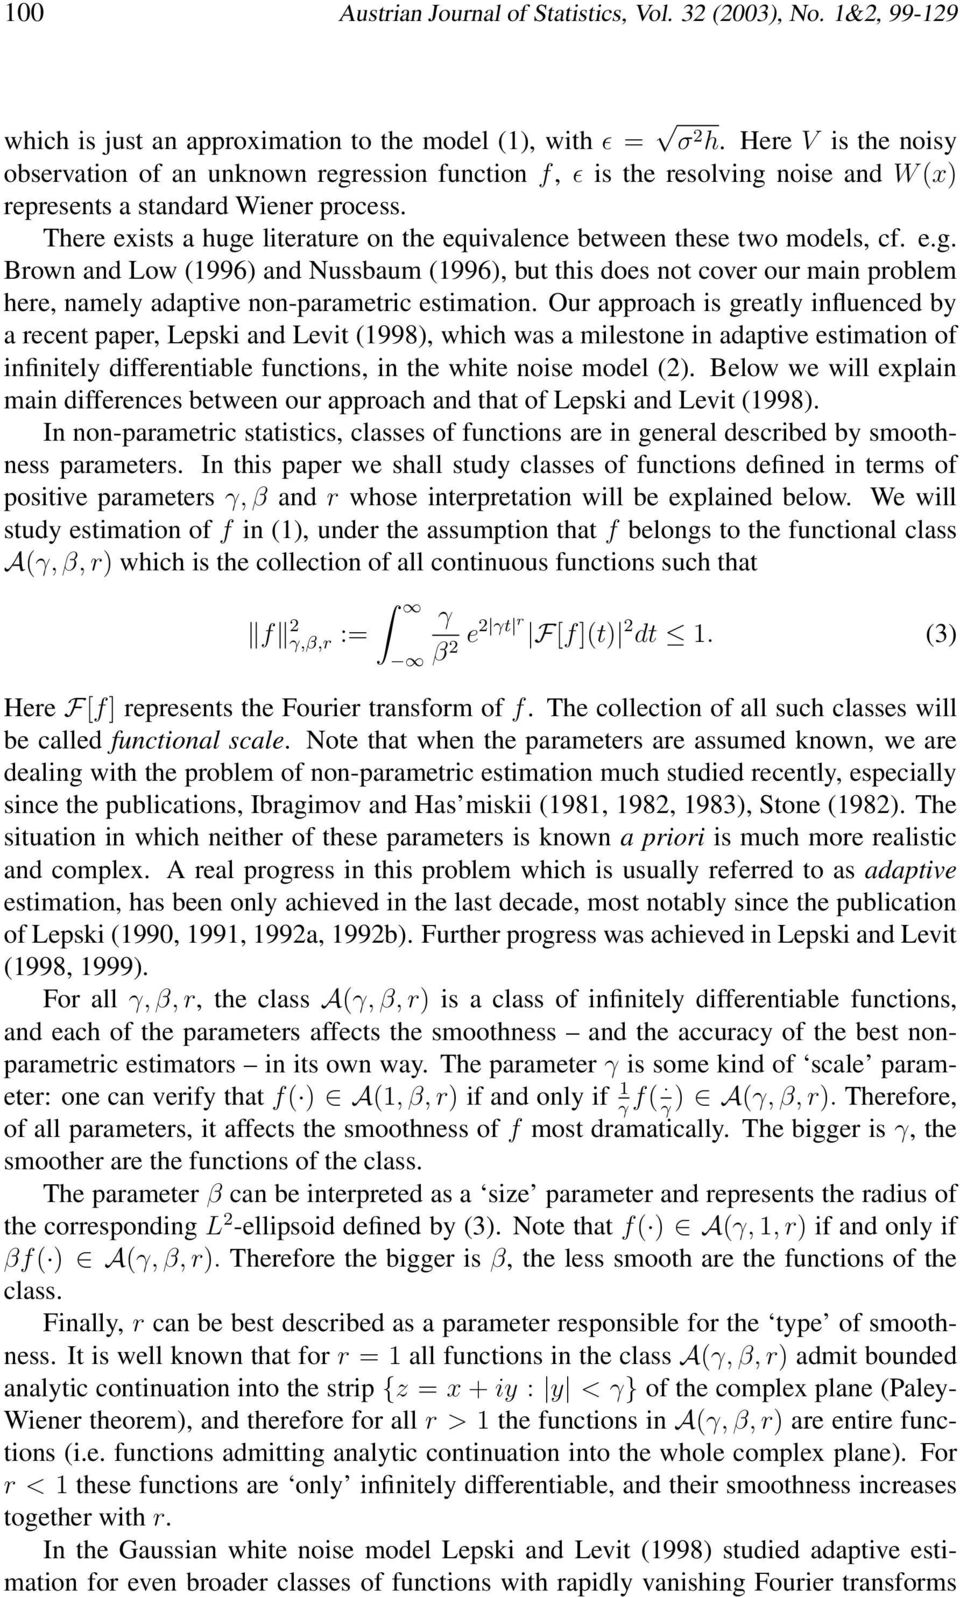 Tere exists a uge literature on te equivalence between tese two models, cf. e.g. Brown and Low 1996 and Nussbaum 1996, but tis does not cover our main problem ere, namely adaptive non-parametric estimation.